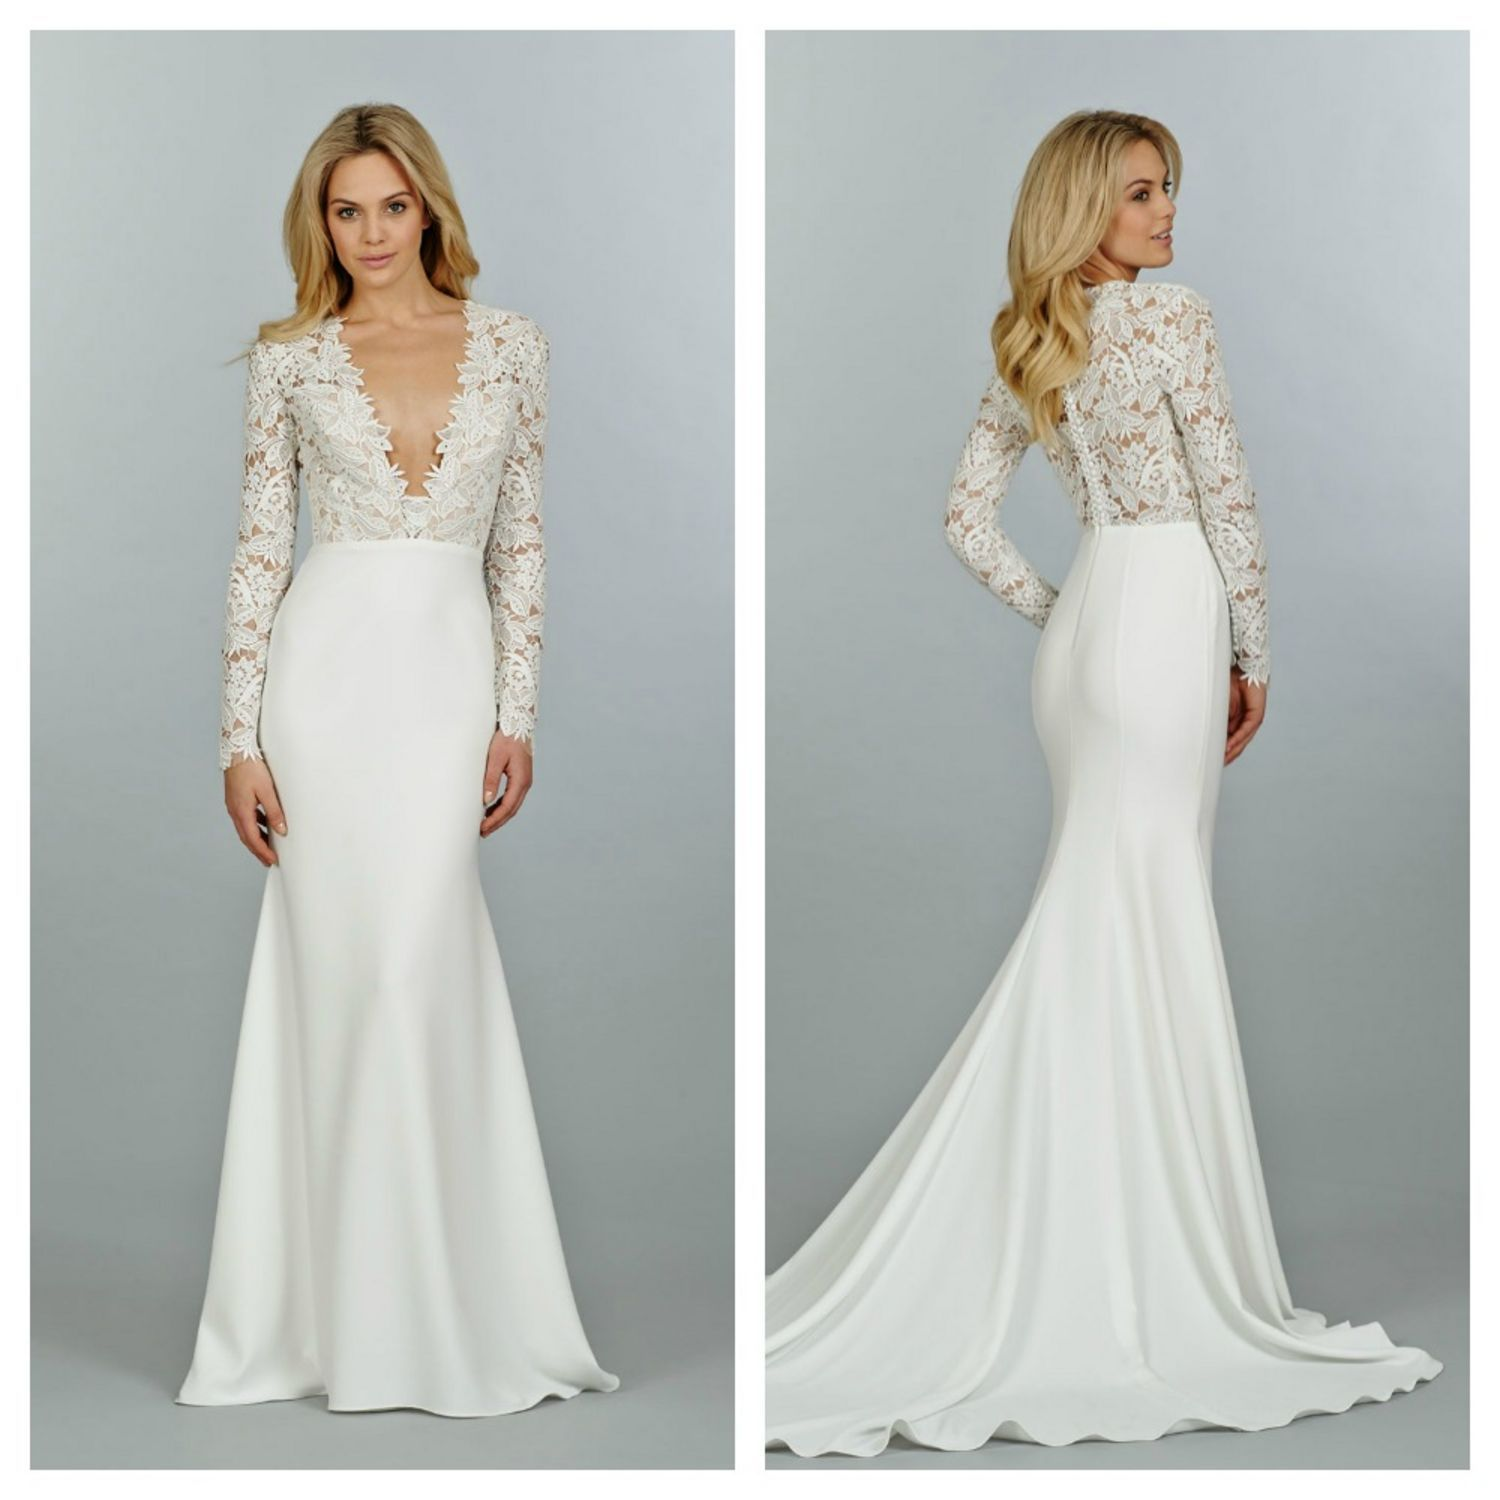 Wedding Givenchy Wedding Dress 7 lovely lace wedding dresses inspired by kim kardashians kardashians